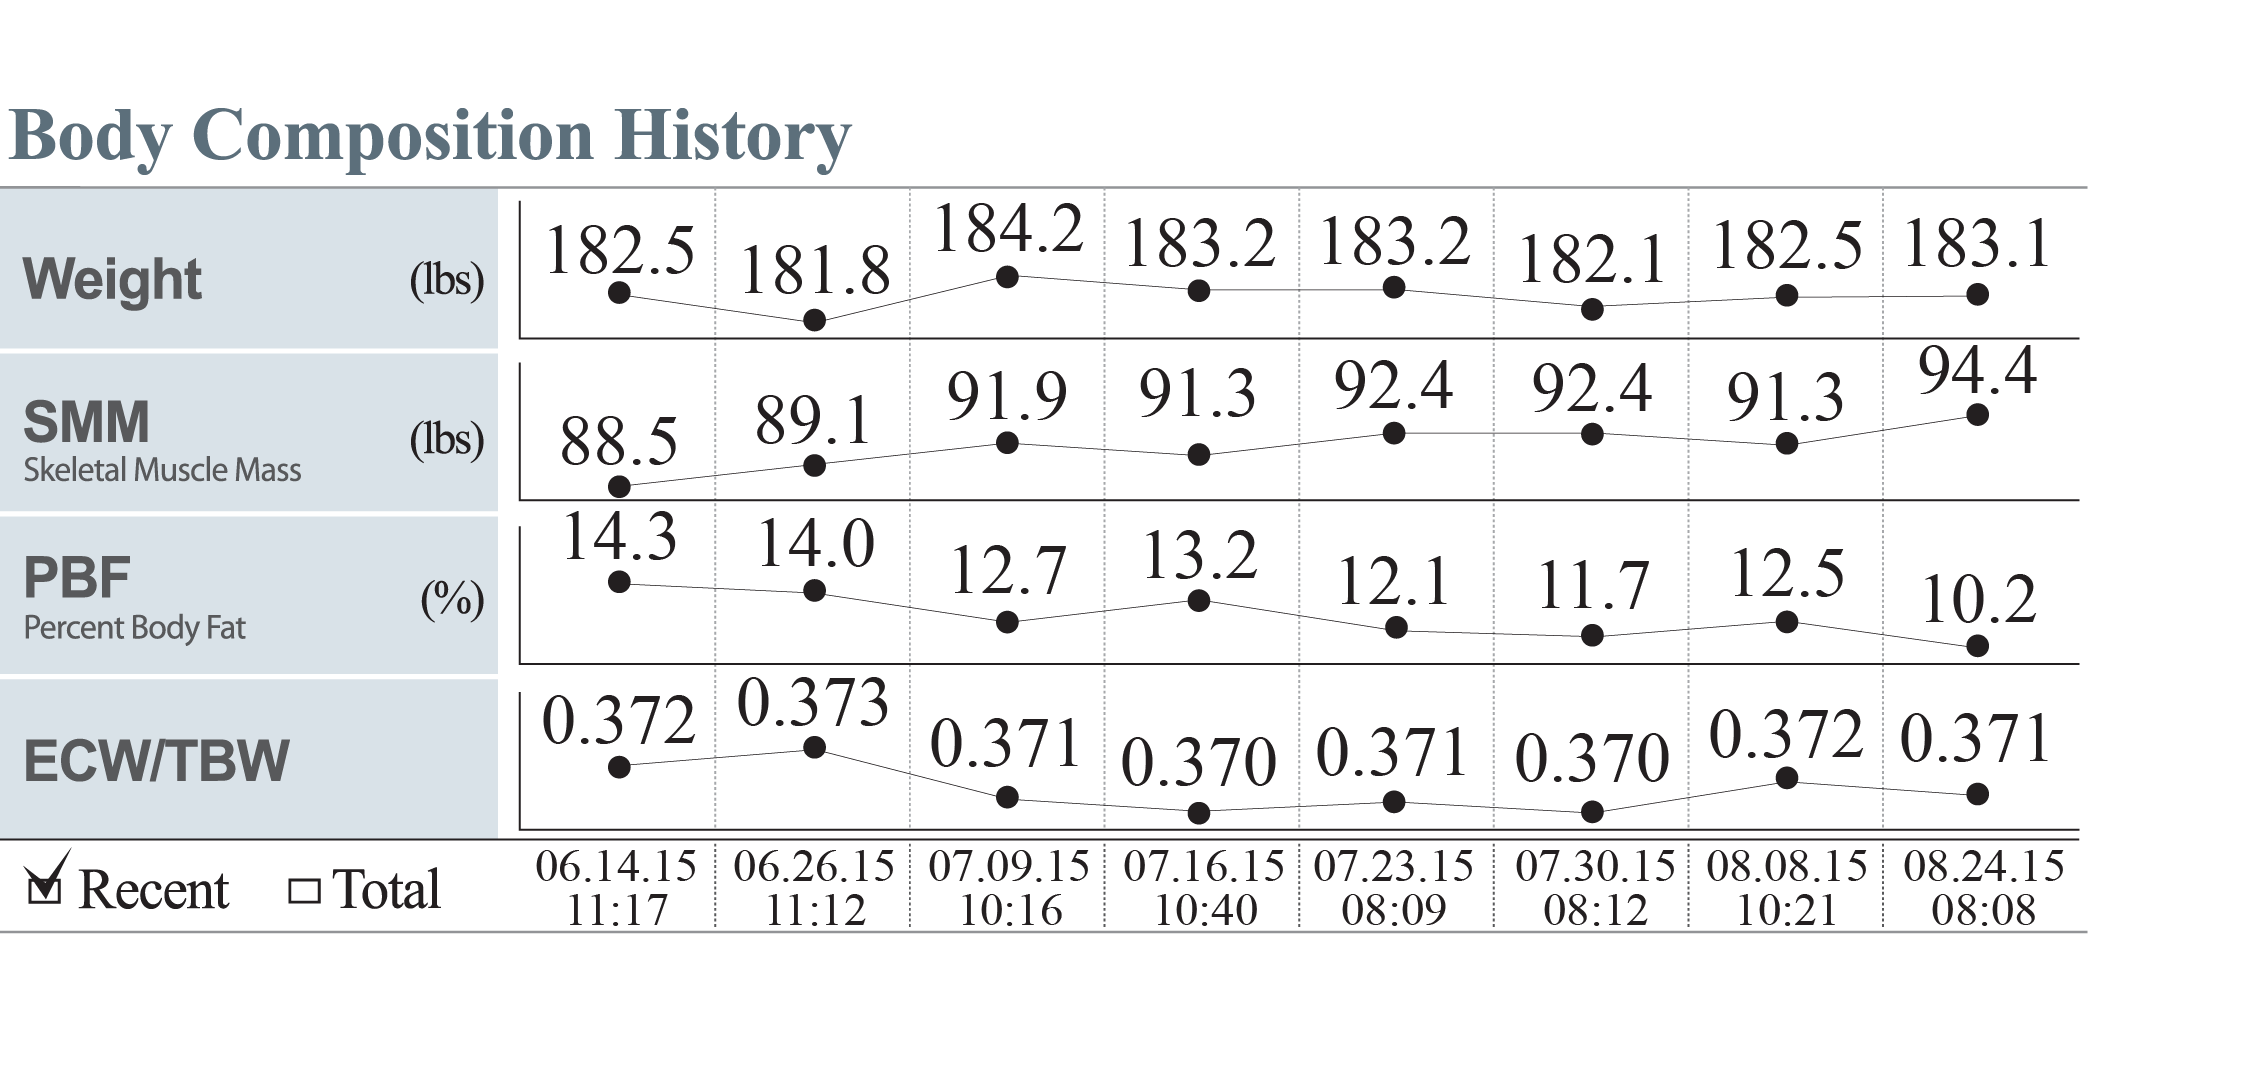 body-comp-history-chart.png